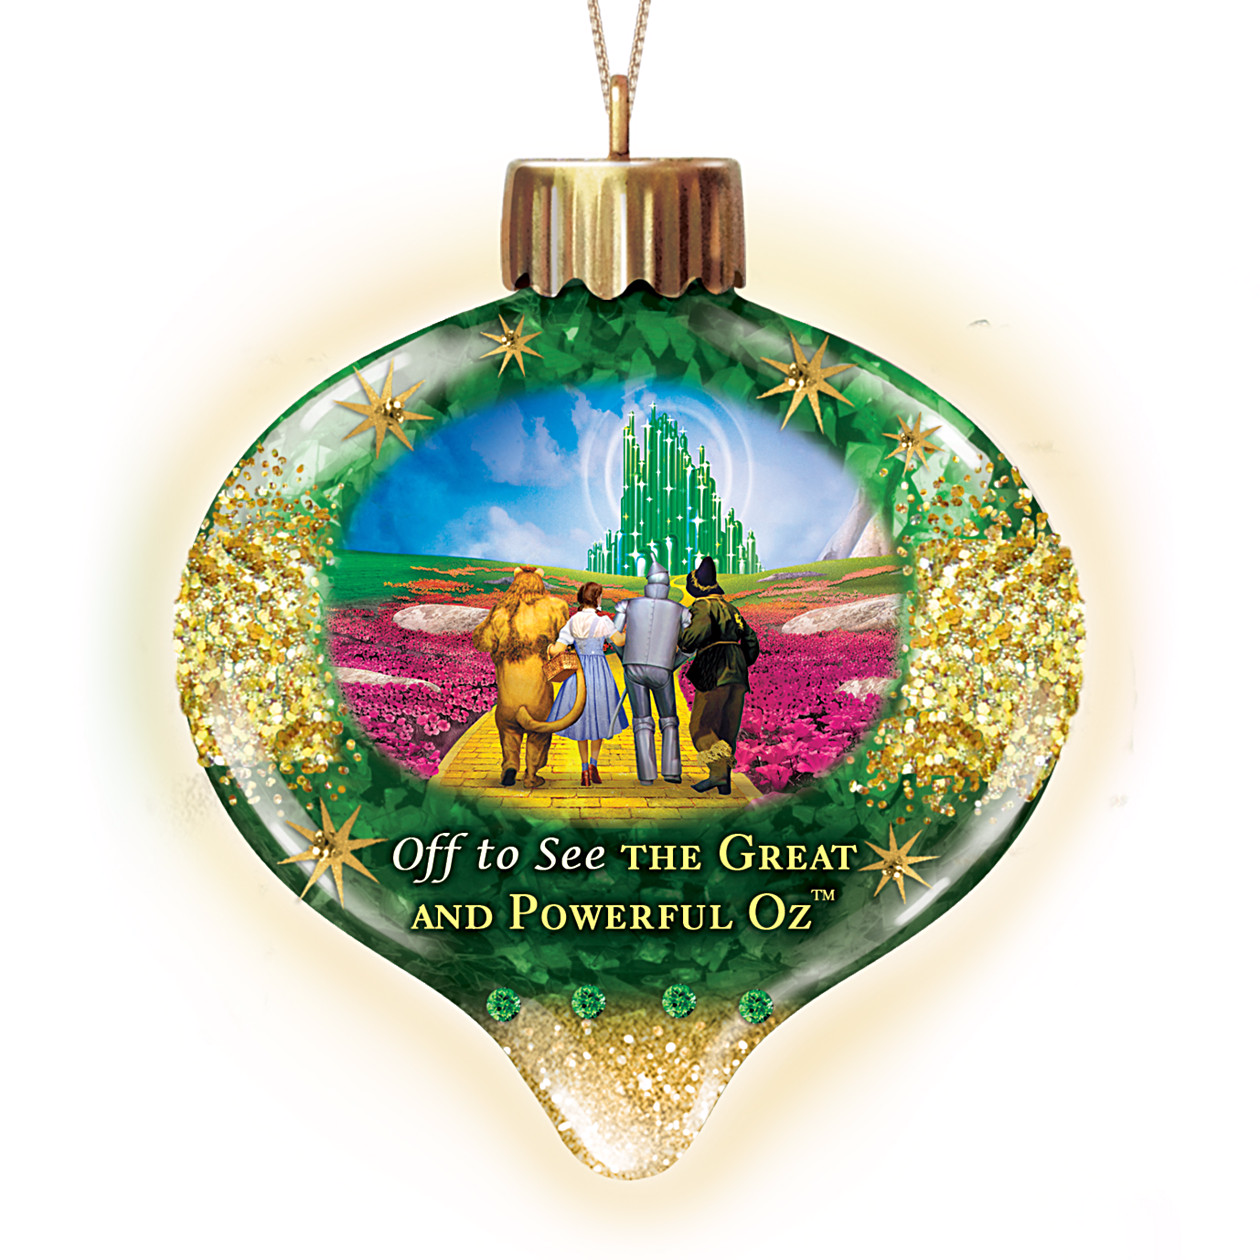 Wizard of oz christmas decorations uk - Http Www Bradfordexchange Com Products 904958_the Wizard Of Oz Ornament Collection Html